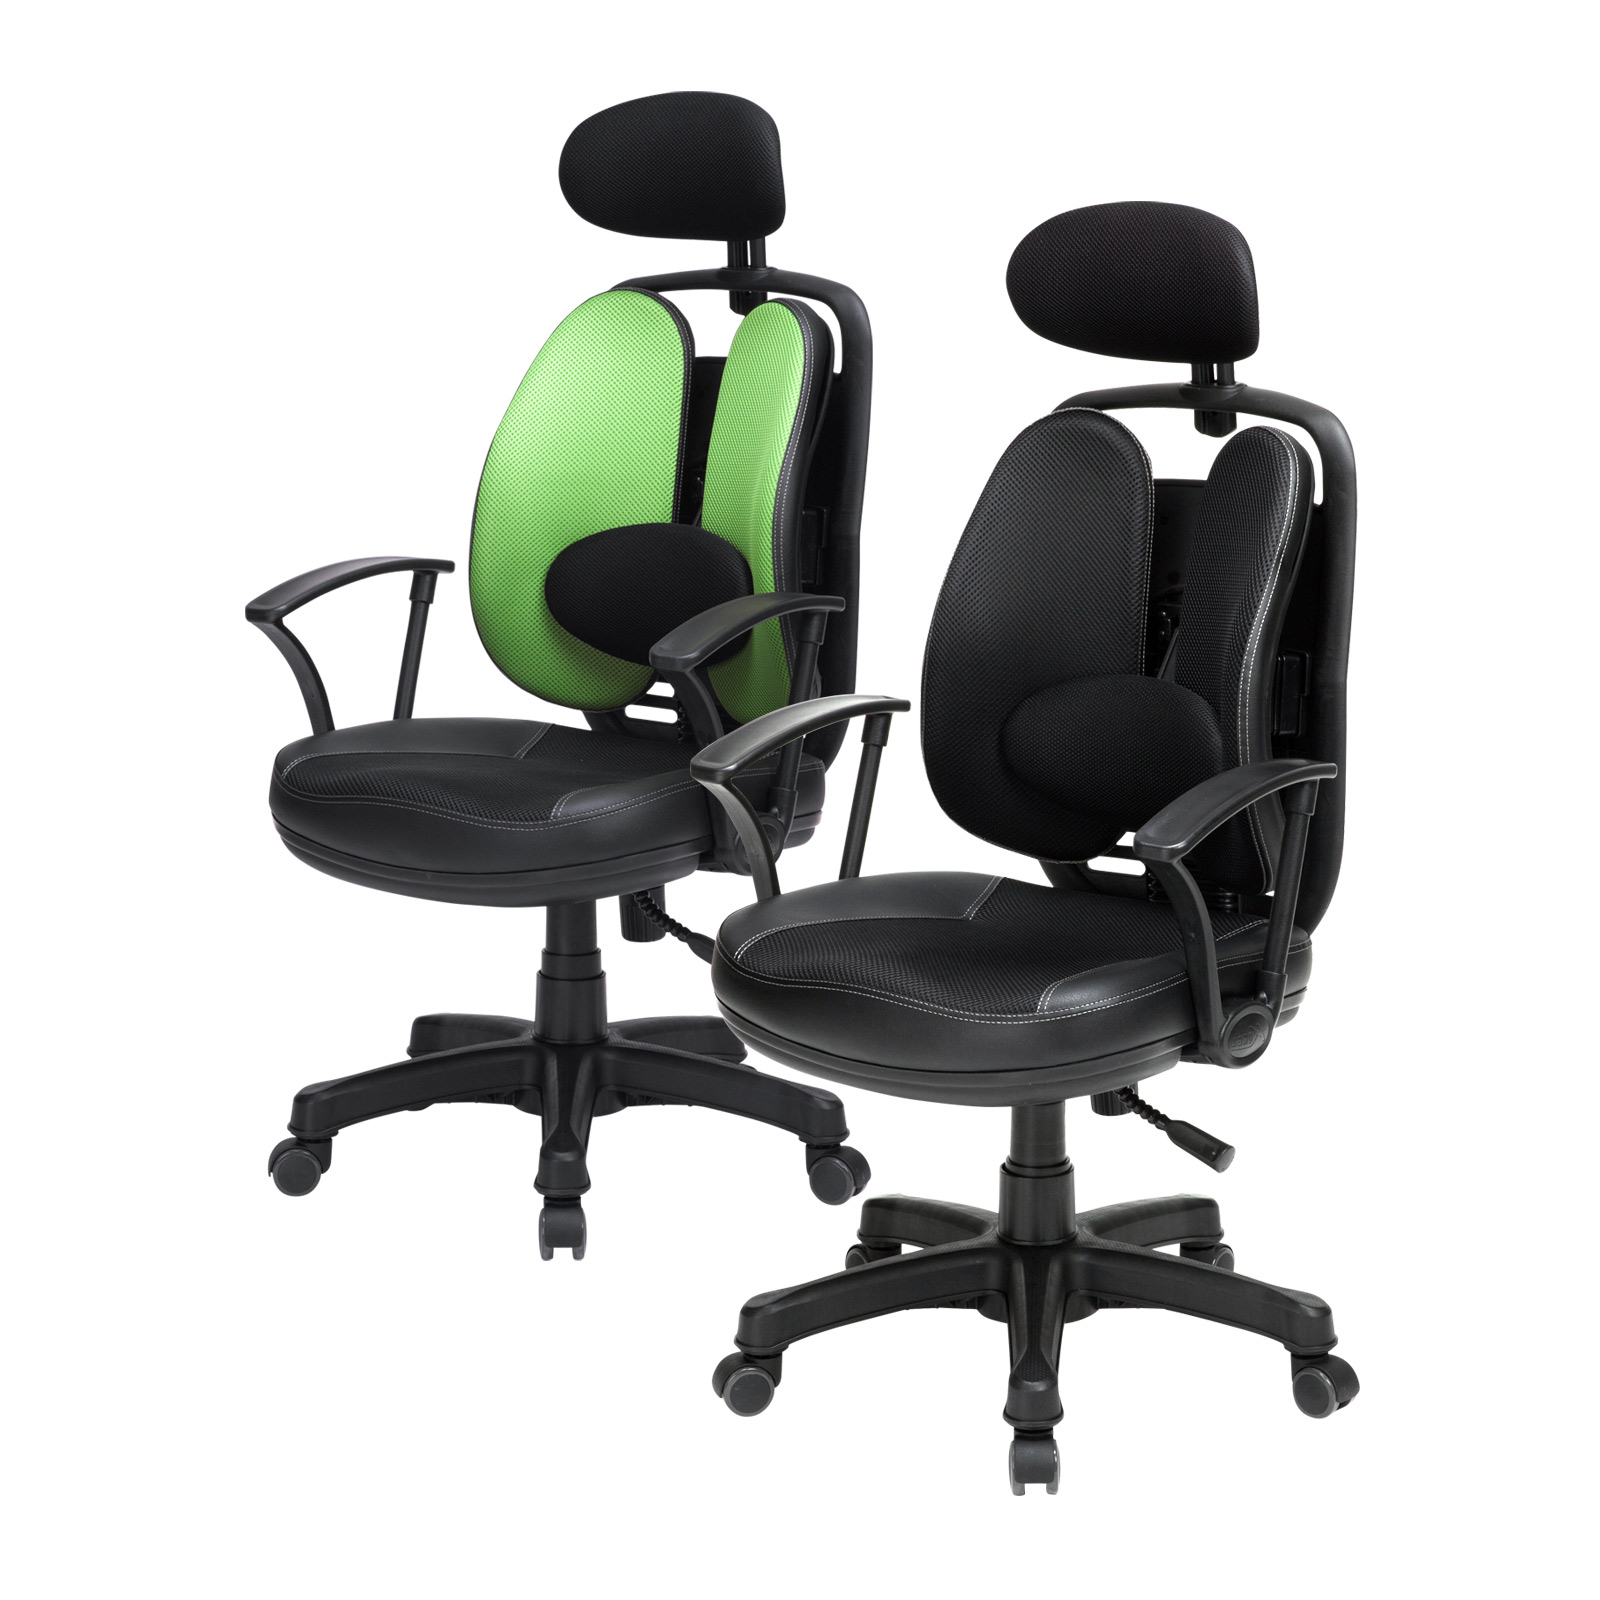 Korean Office Chair SUPERB BLACK - GREEN